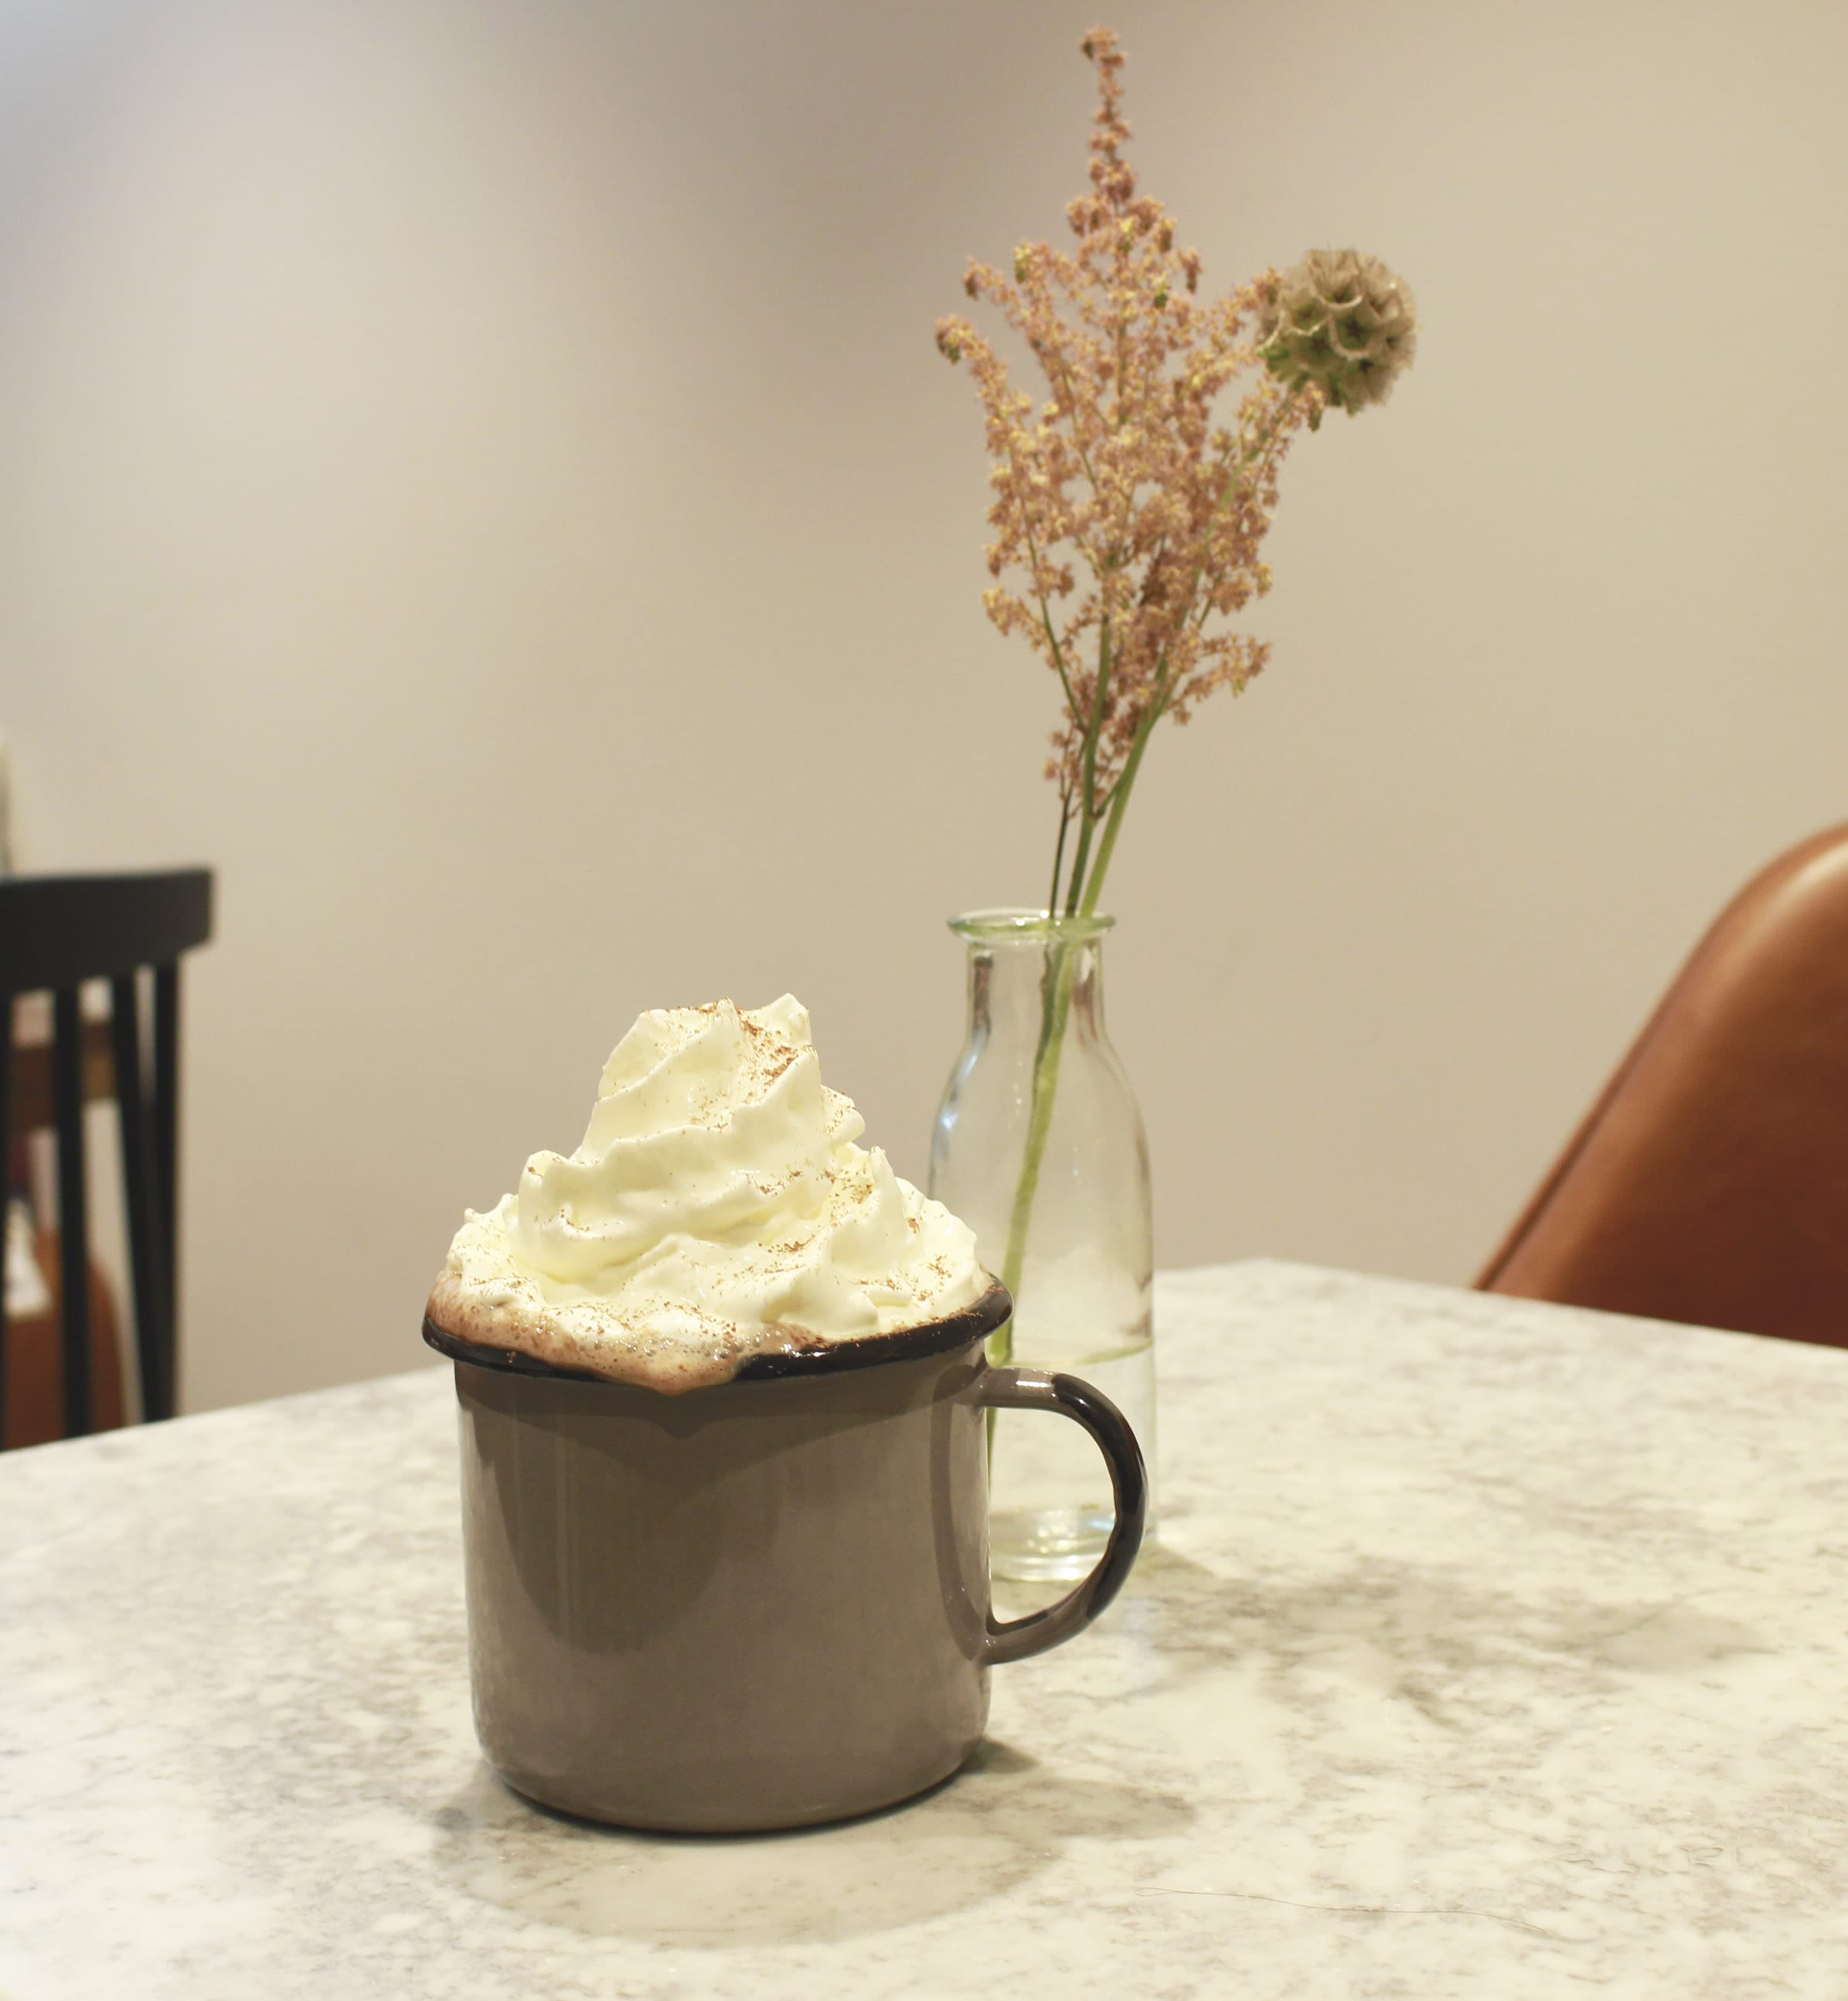 hot chocolate, autumn, interior, coffee shop